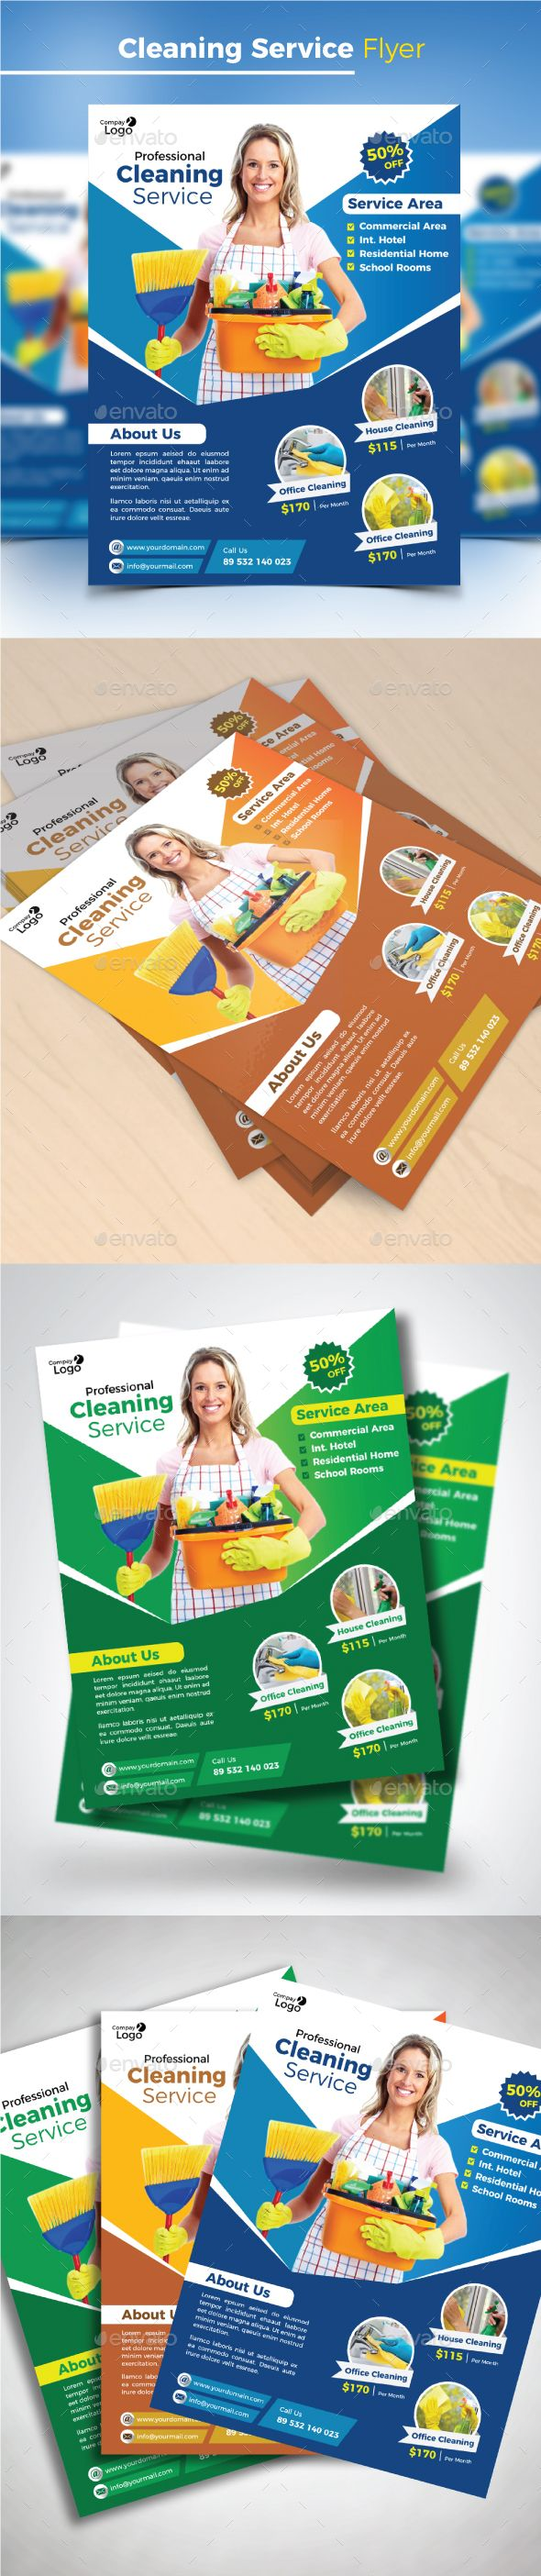 Cleaning service flyer cleaning service flyer template and template cleaning service flyer commerce flyers download here httpsgraphicriver business flyer templatesbusiness cheaphphosting Image collections